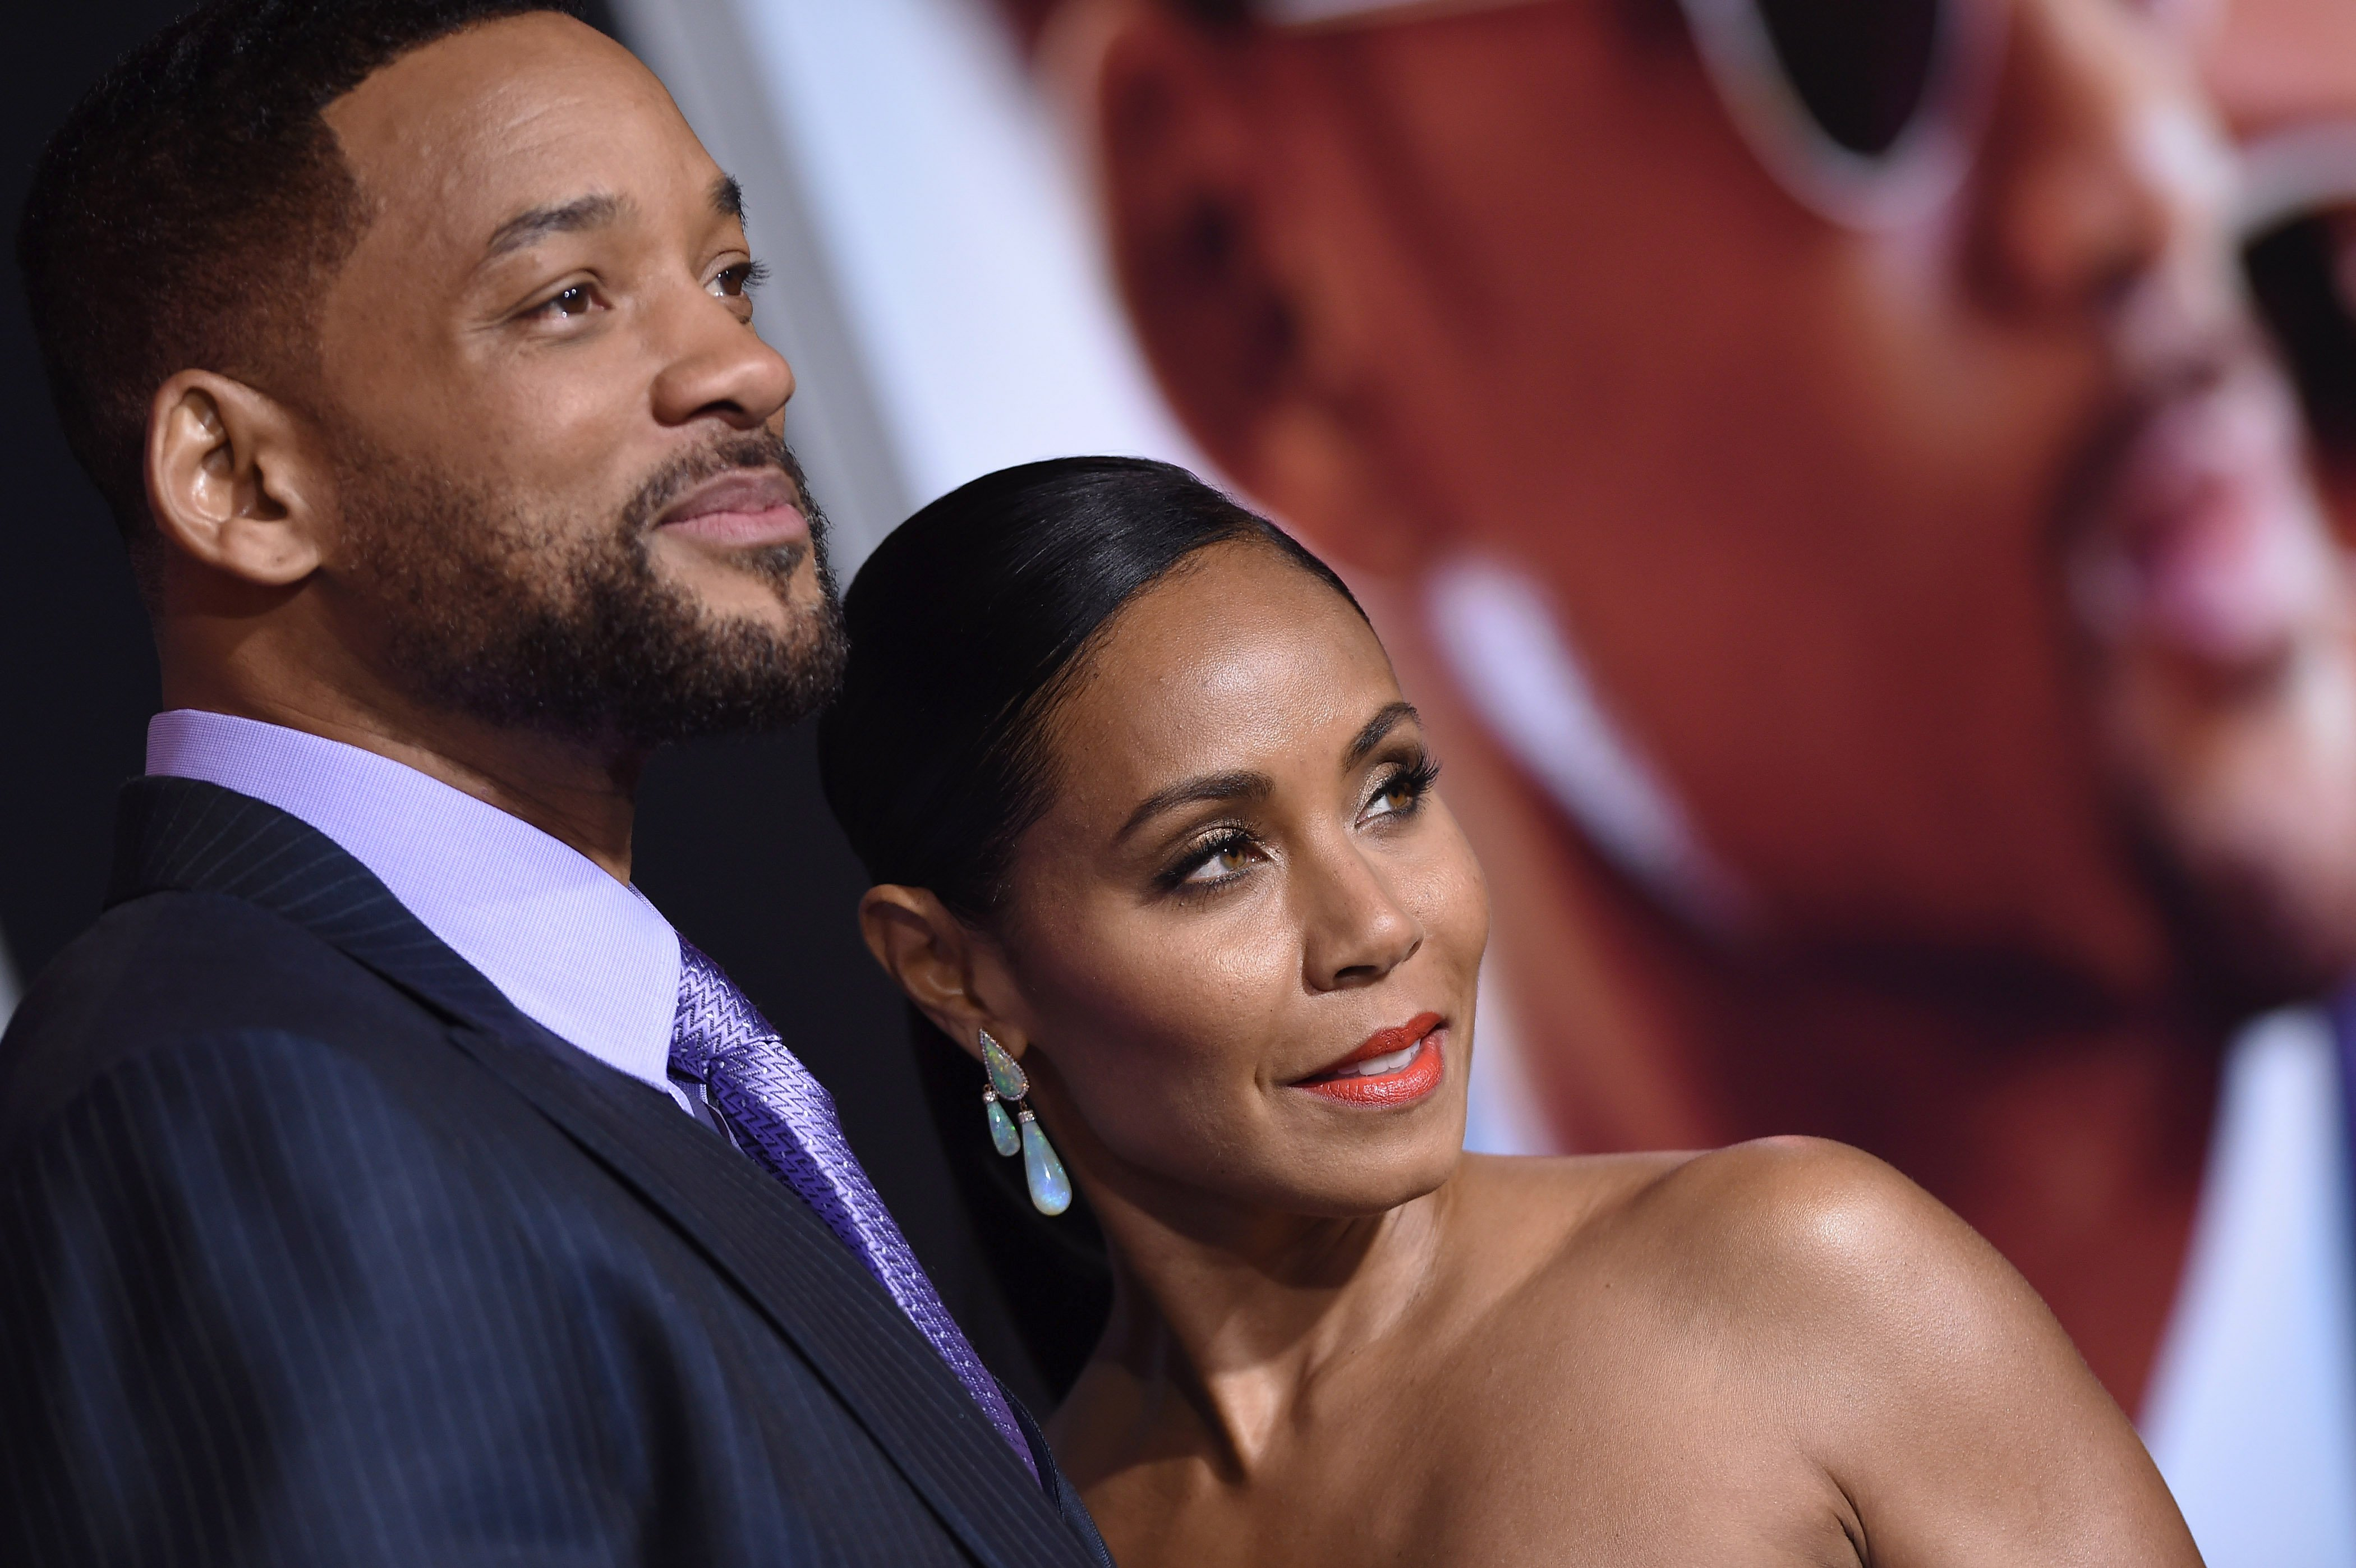 Actors Will Smith and Jada Pinkett Smith arrive at the Los Angeles World Premiere of Warner Bros. Pictures 'Focus' at TCL Chinese Theatre on February 24, 2015. | Photo: Getty Images